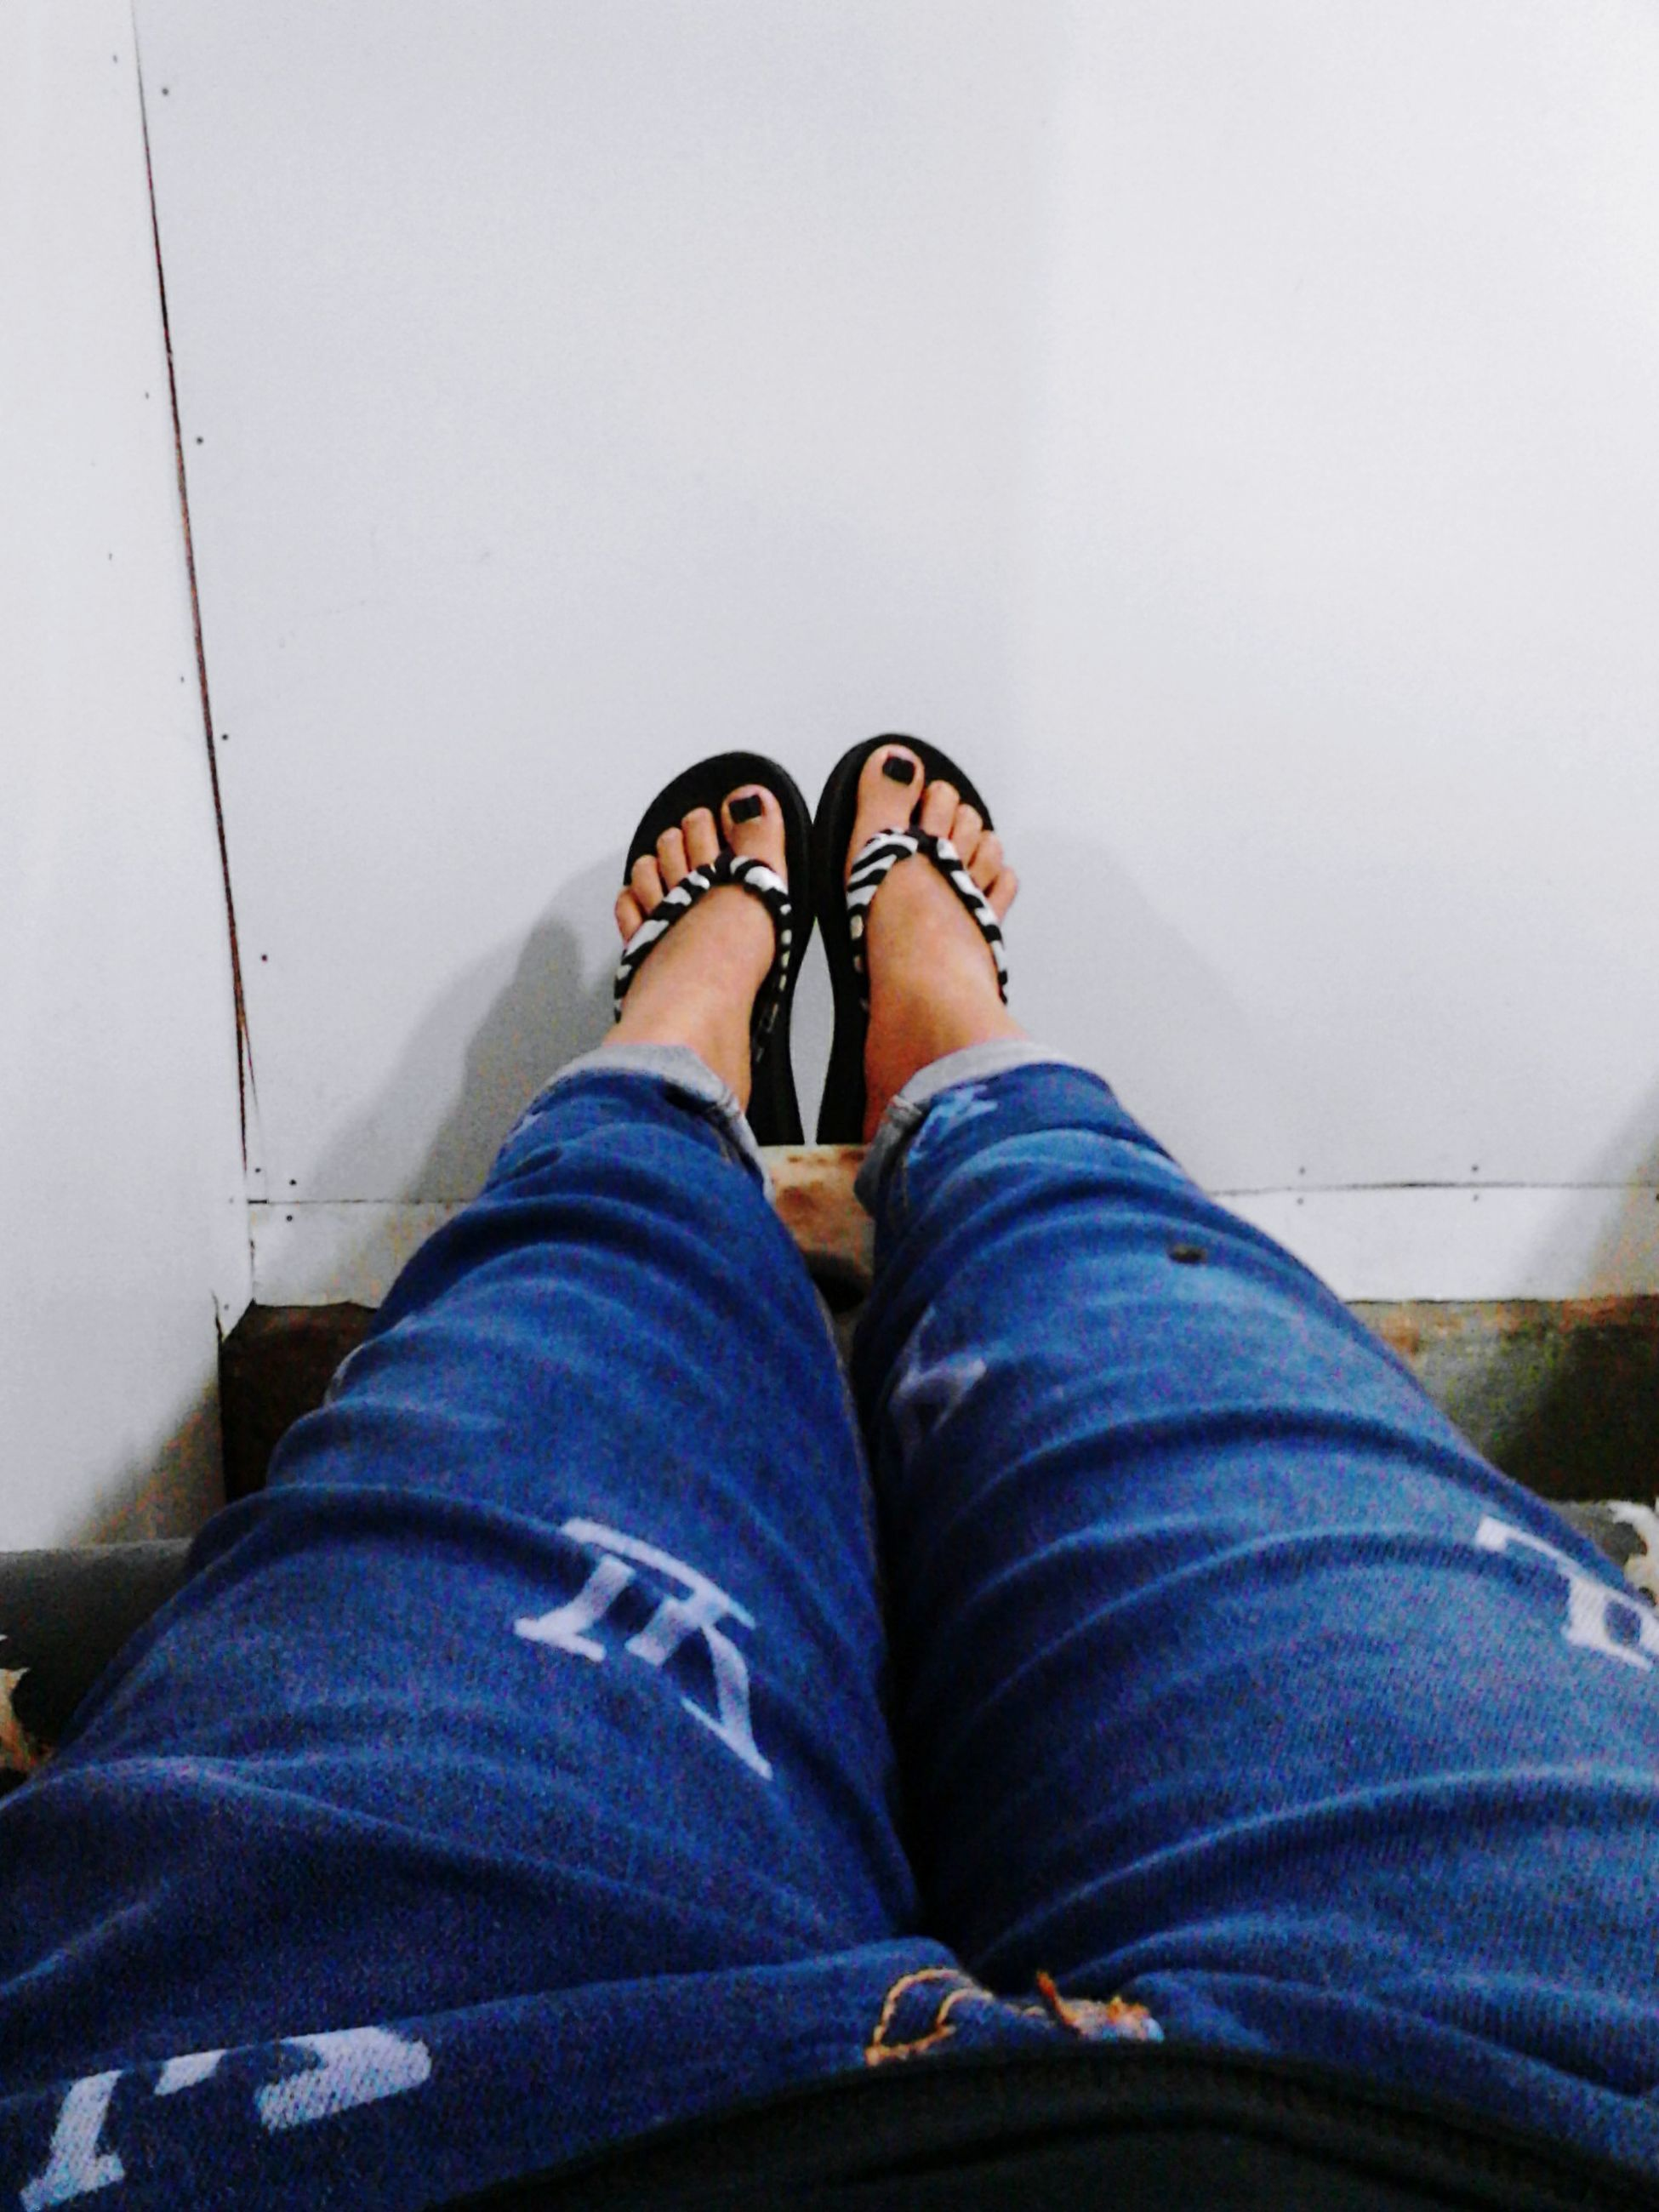 low section, person, shoe, personal perspective, jeans, lifestyles, human foot, relaxation, casual clothing, leisure activity, sitting, standing, footwear, indoors, legs crossed at ankle, men